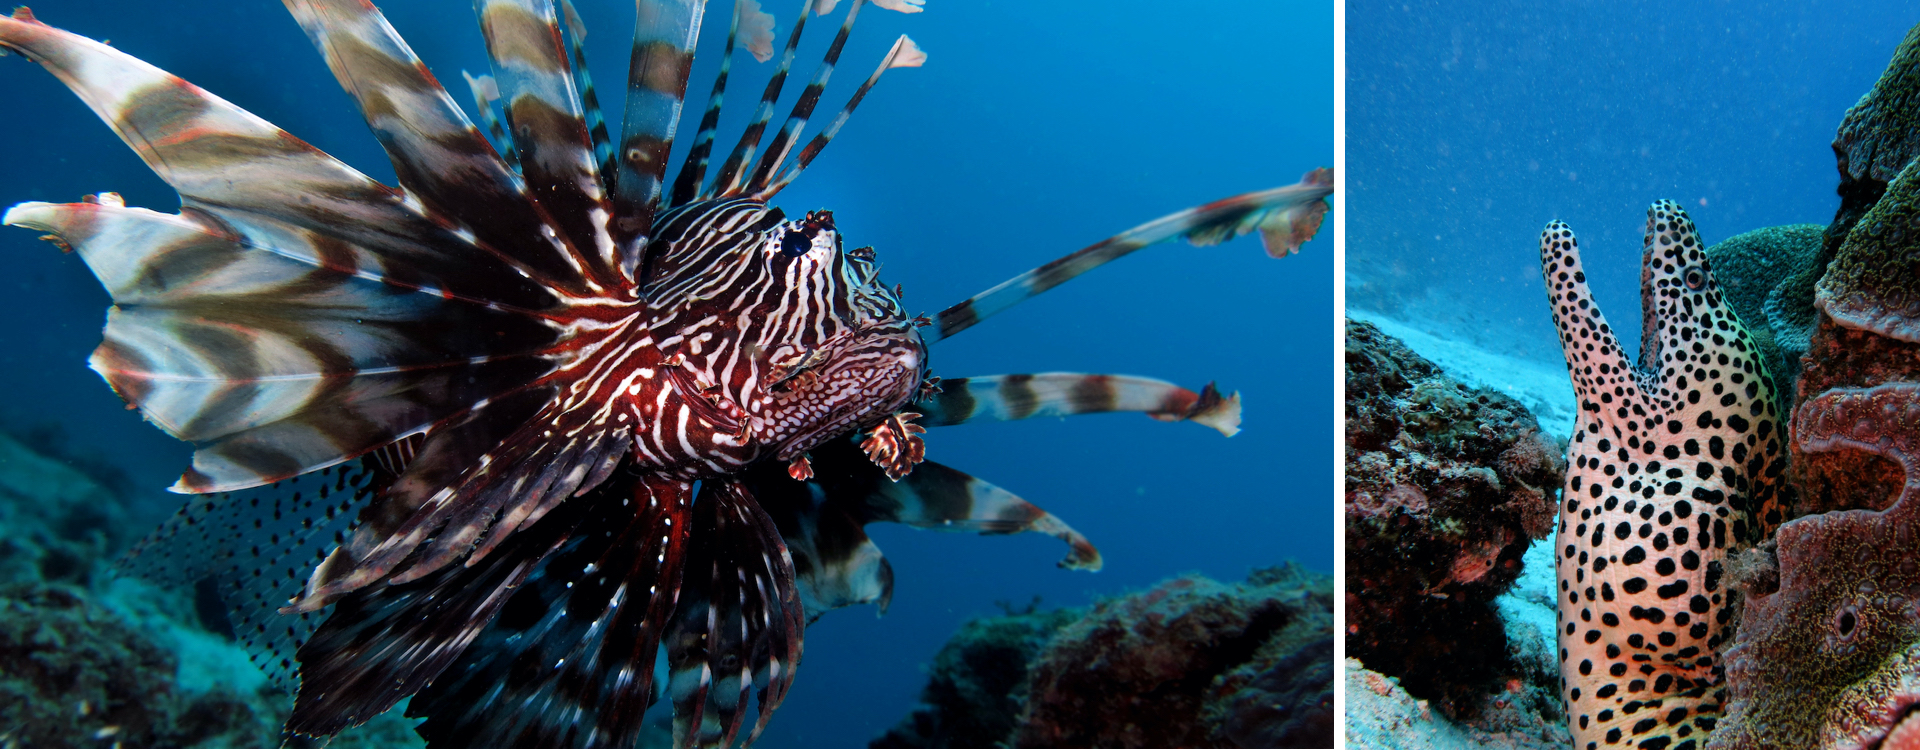 (Left) The lionfish is native to the South Pacific and Indian Oceans. This slow mover relies on its unusual colouration and fan-like fins to deter predators. (Right) Found across the West Pacific and Indian Oceans, the honeycomb moray eel is usually seen sticking out from holes and small caves in a reef. It can grow up to two metres in length, making it one of the longest species of moray eels. Photos: Vardhan Patankar